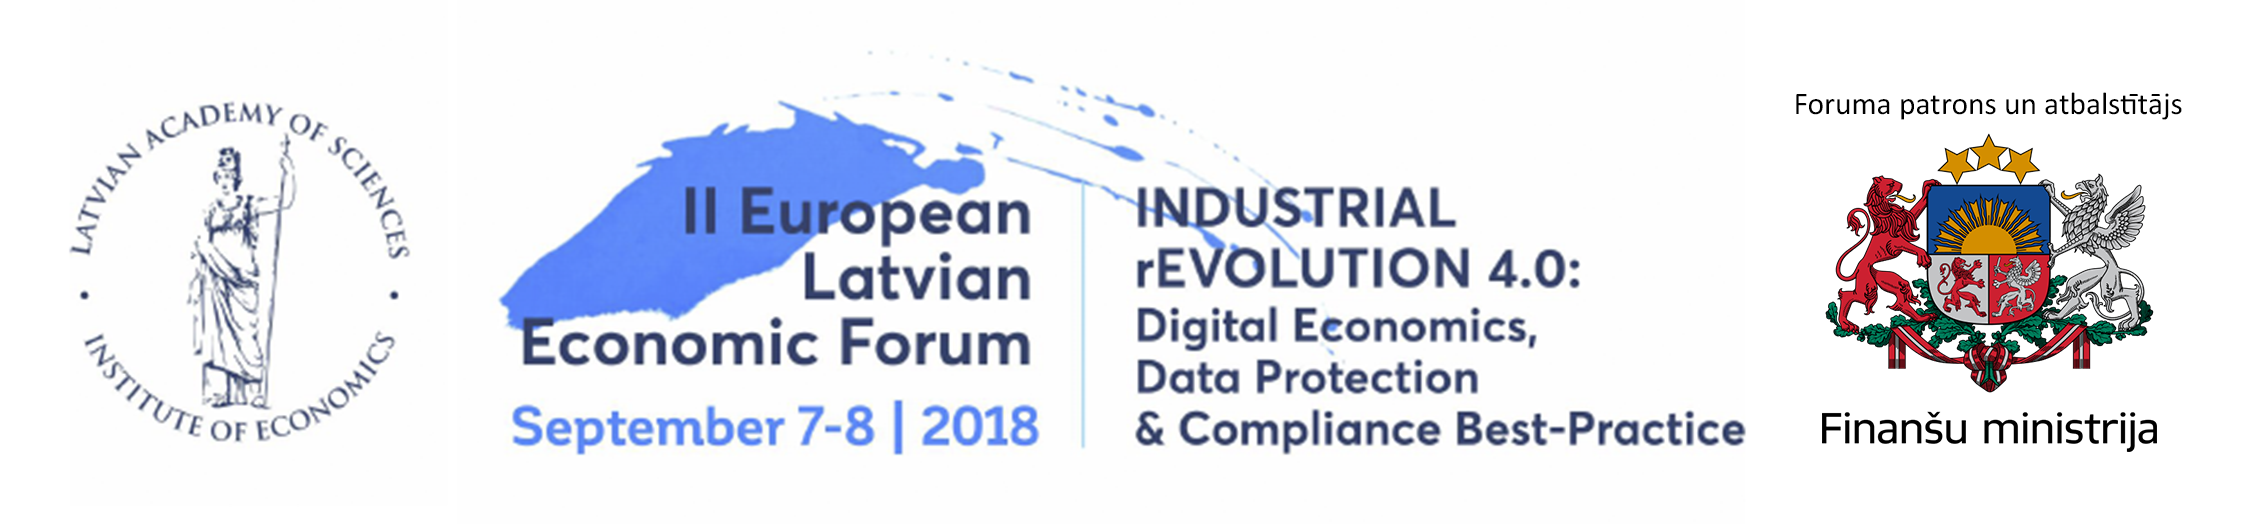 II European-Latvian Economic Forum